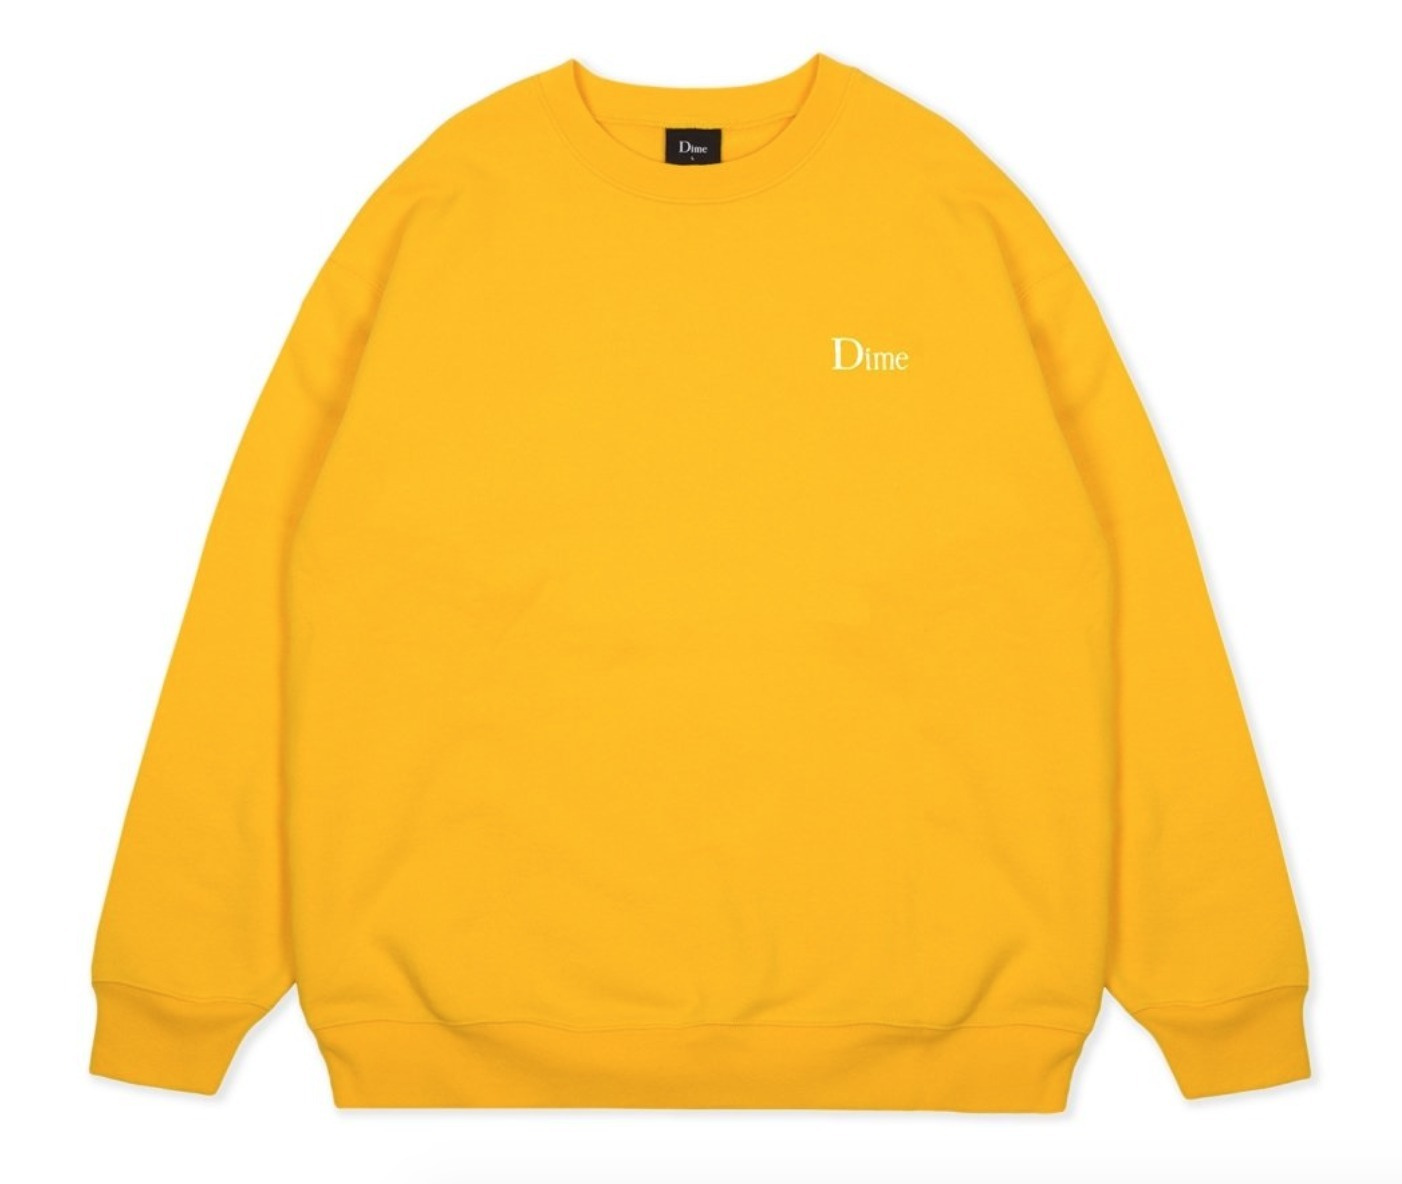 shop 一毛钱 clothing